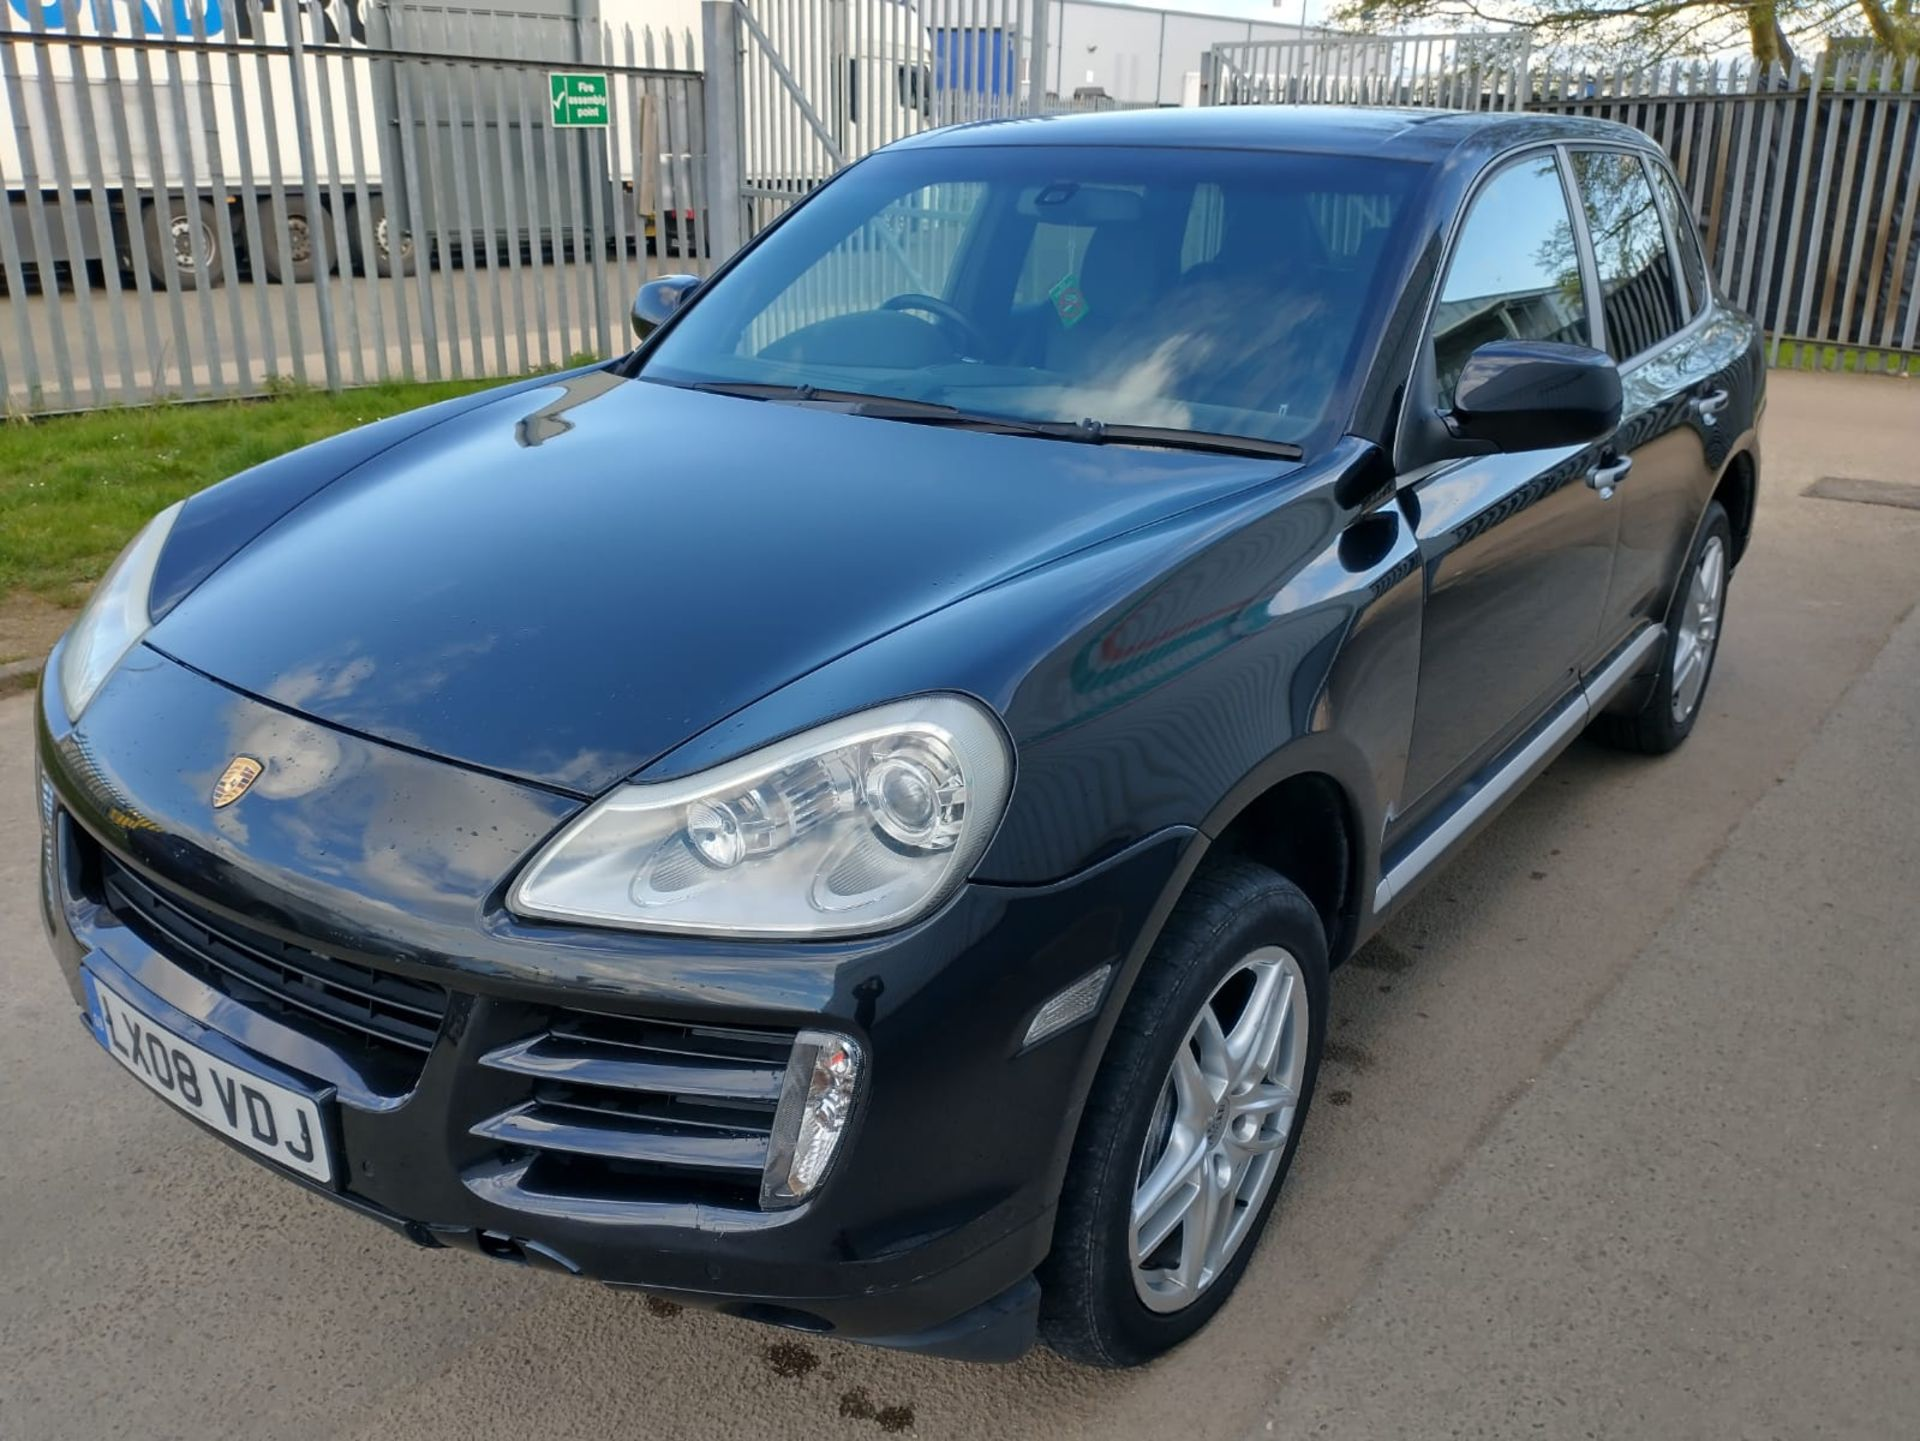 2008 Porsche Cayenne Tiptronic 3.6 5Dr SUV - CL505 - NO VAT ON THE HAMMER - Location: Corby, Northam - Image 2 of 16